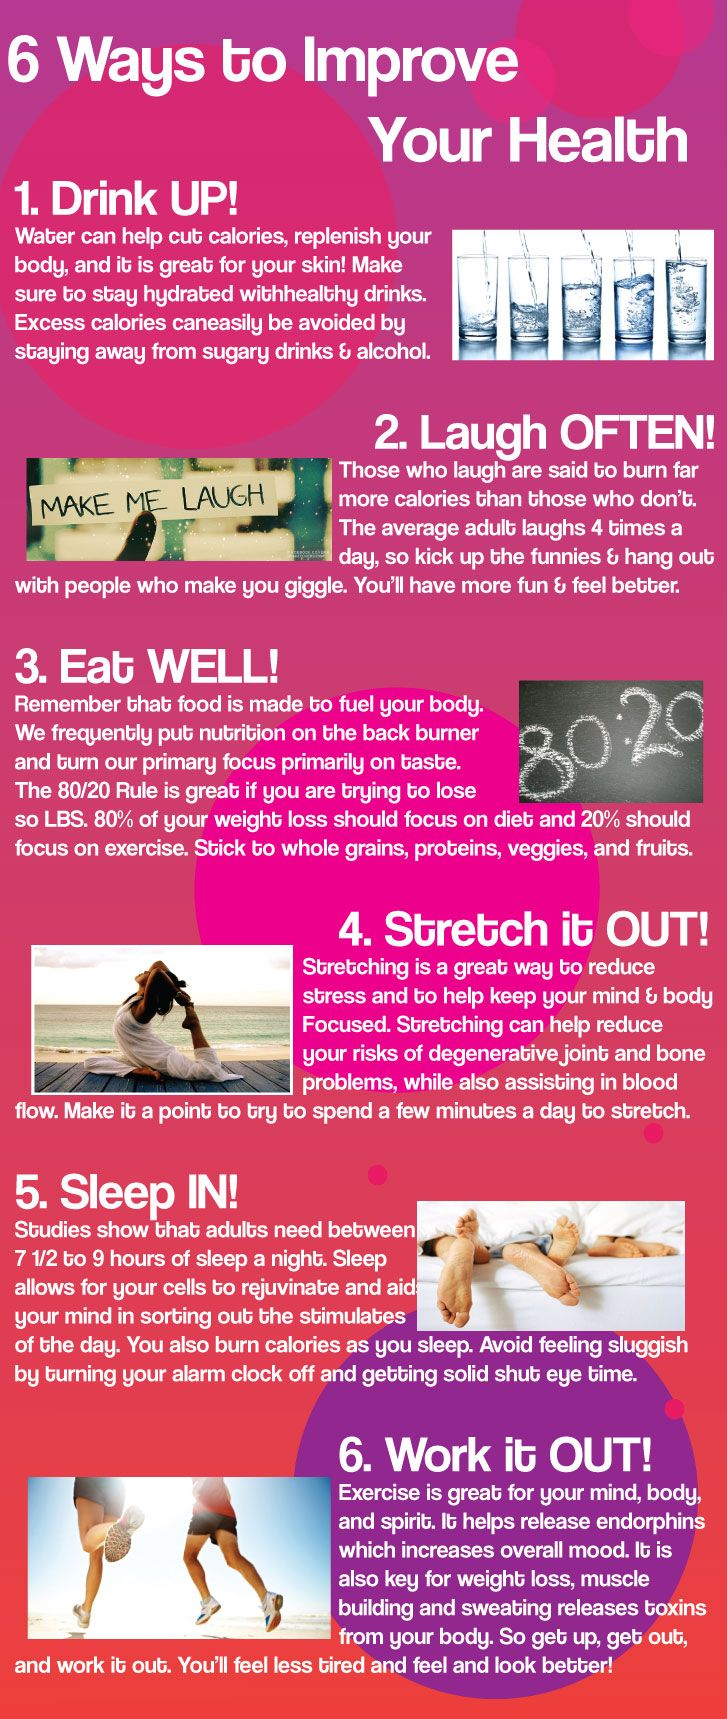 HEALTHY LIFESTYLE -         6 Ways to Improve Your Health. #Health #Infographic.